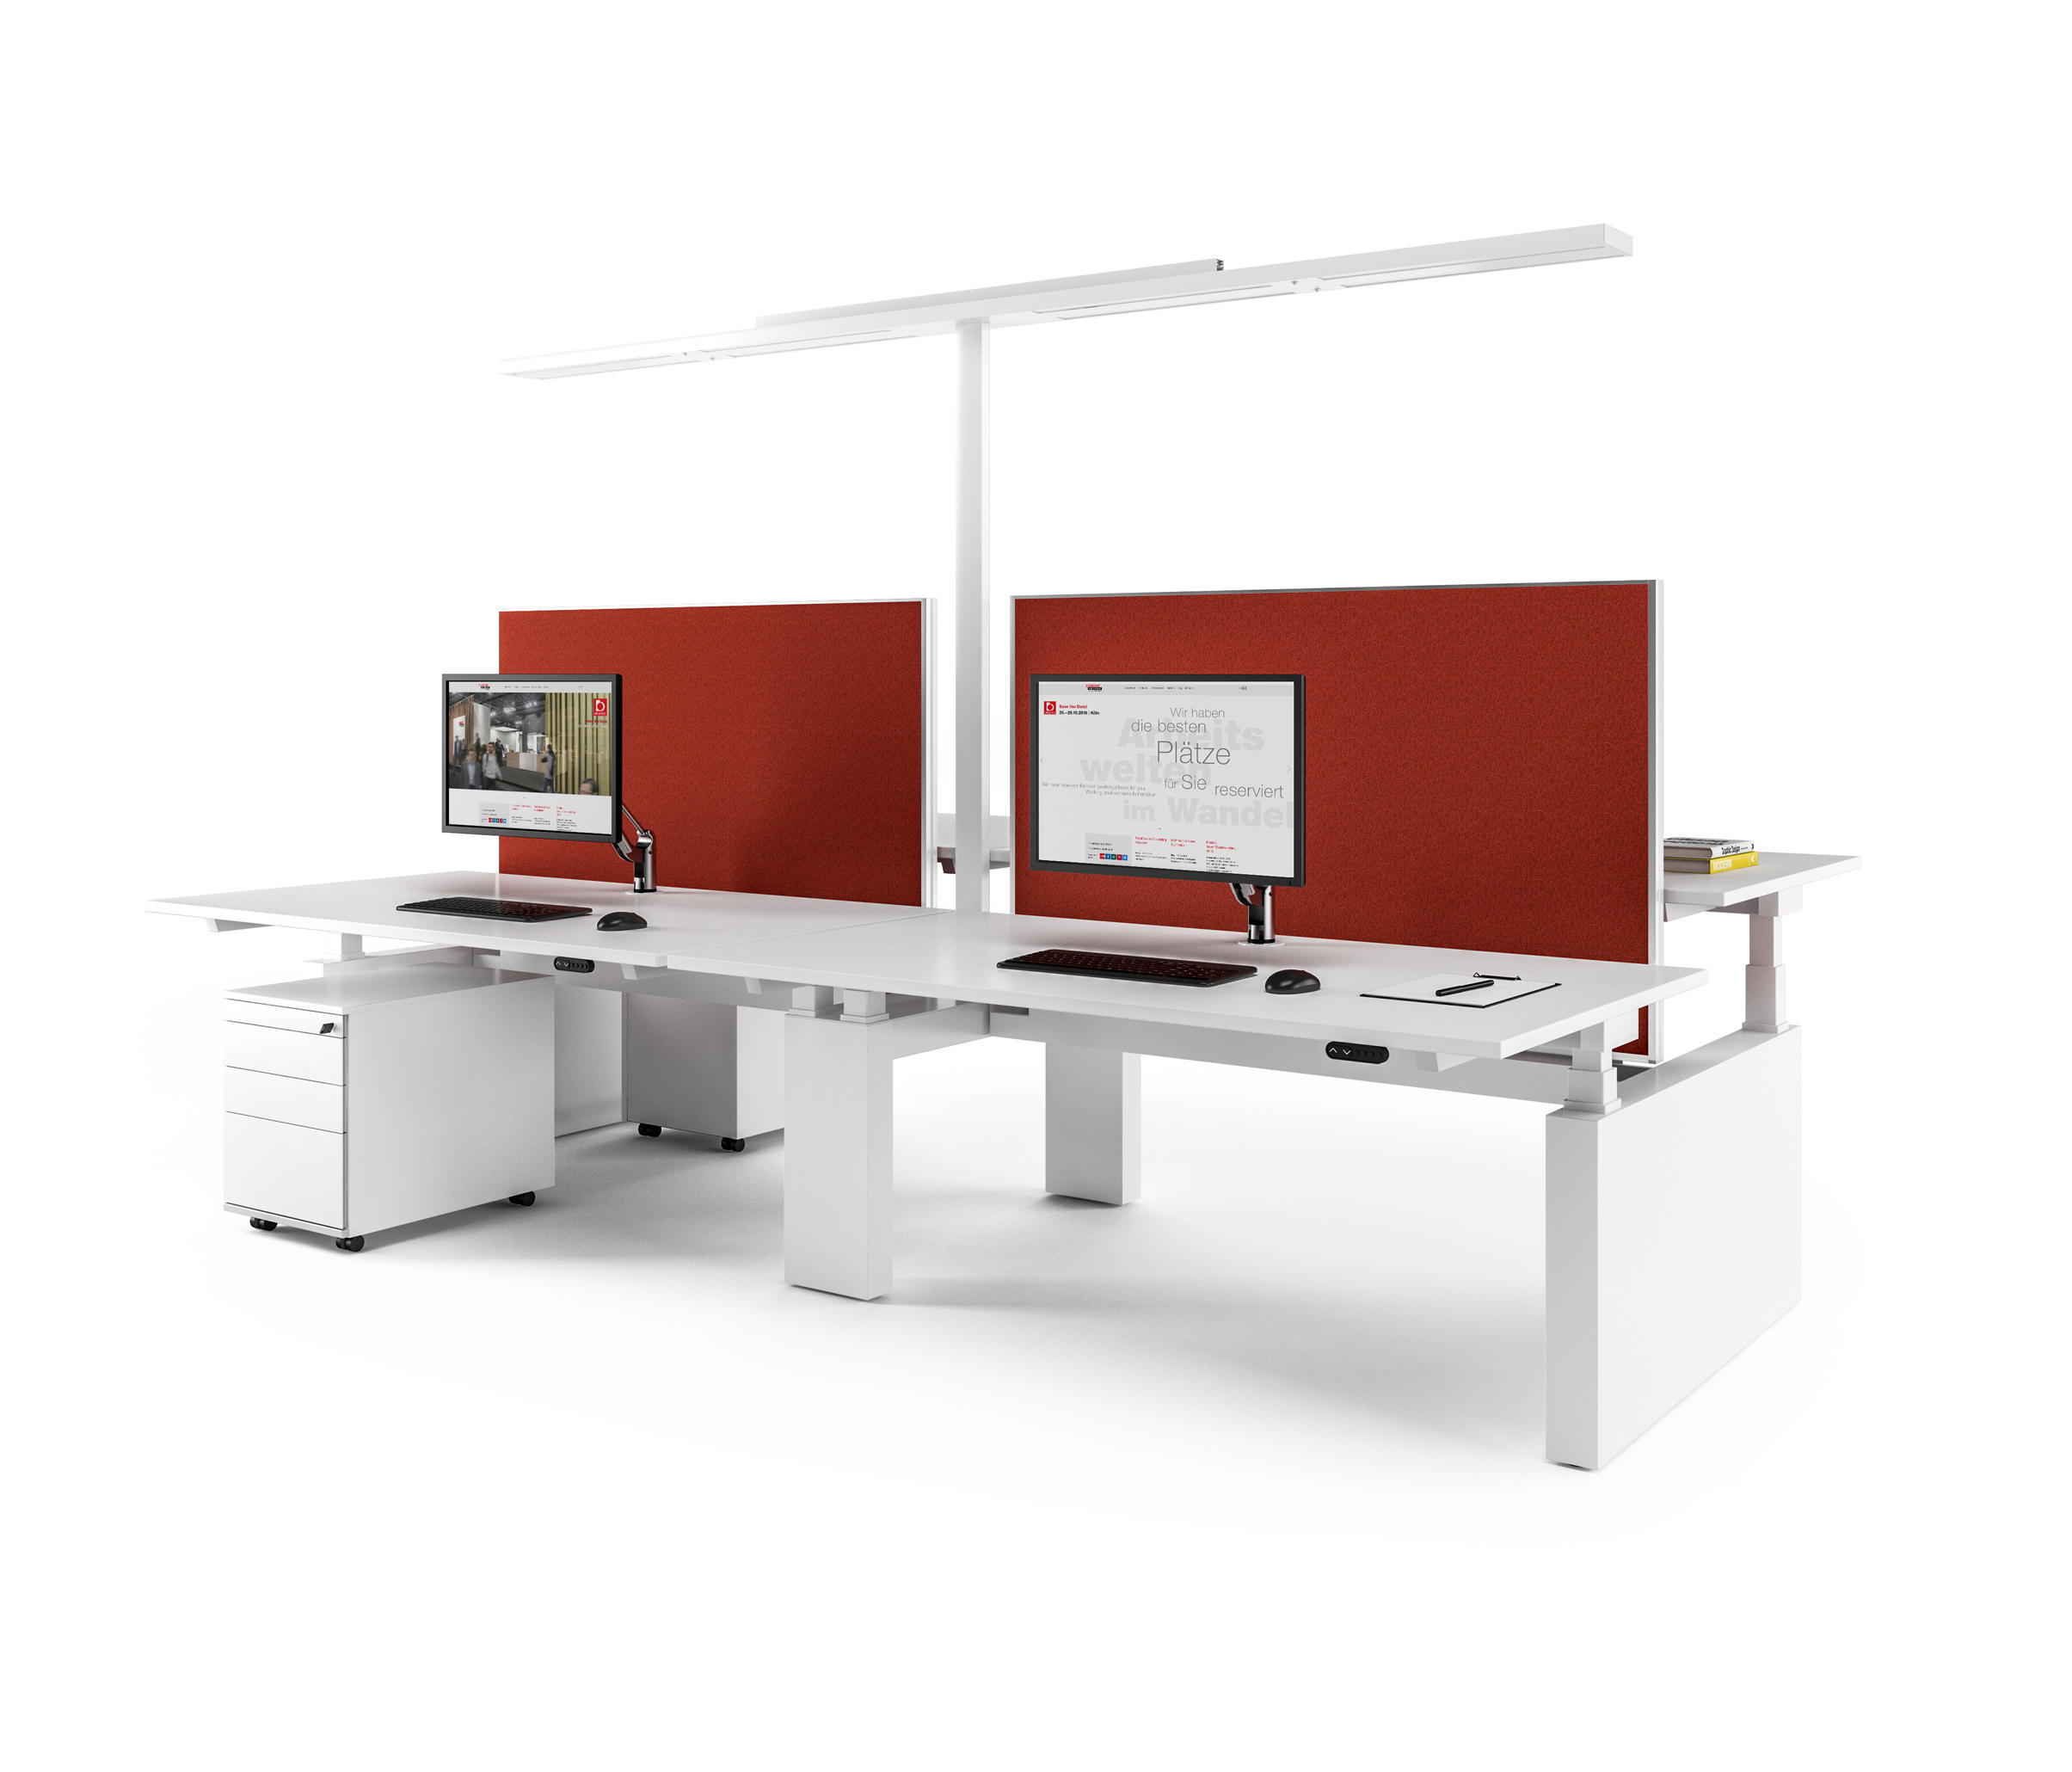 canvaro compact desking programme desking systems from. Black Bedroom Furniture Sets. Home Design Ideas